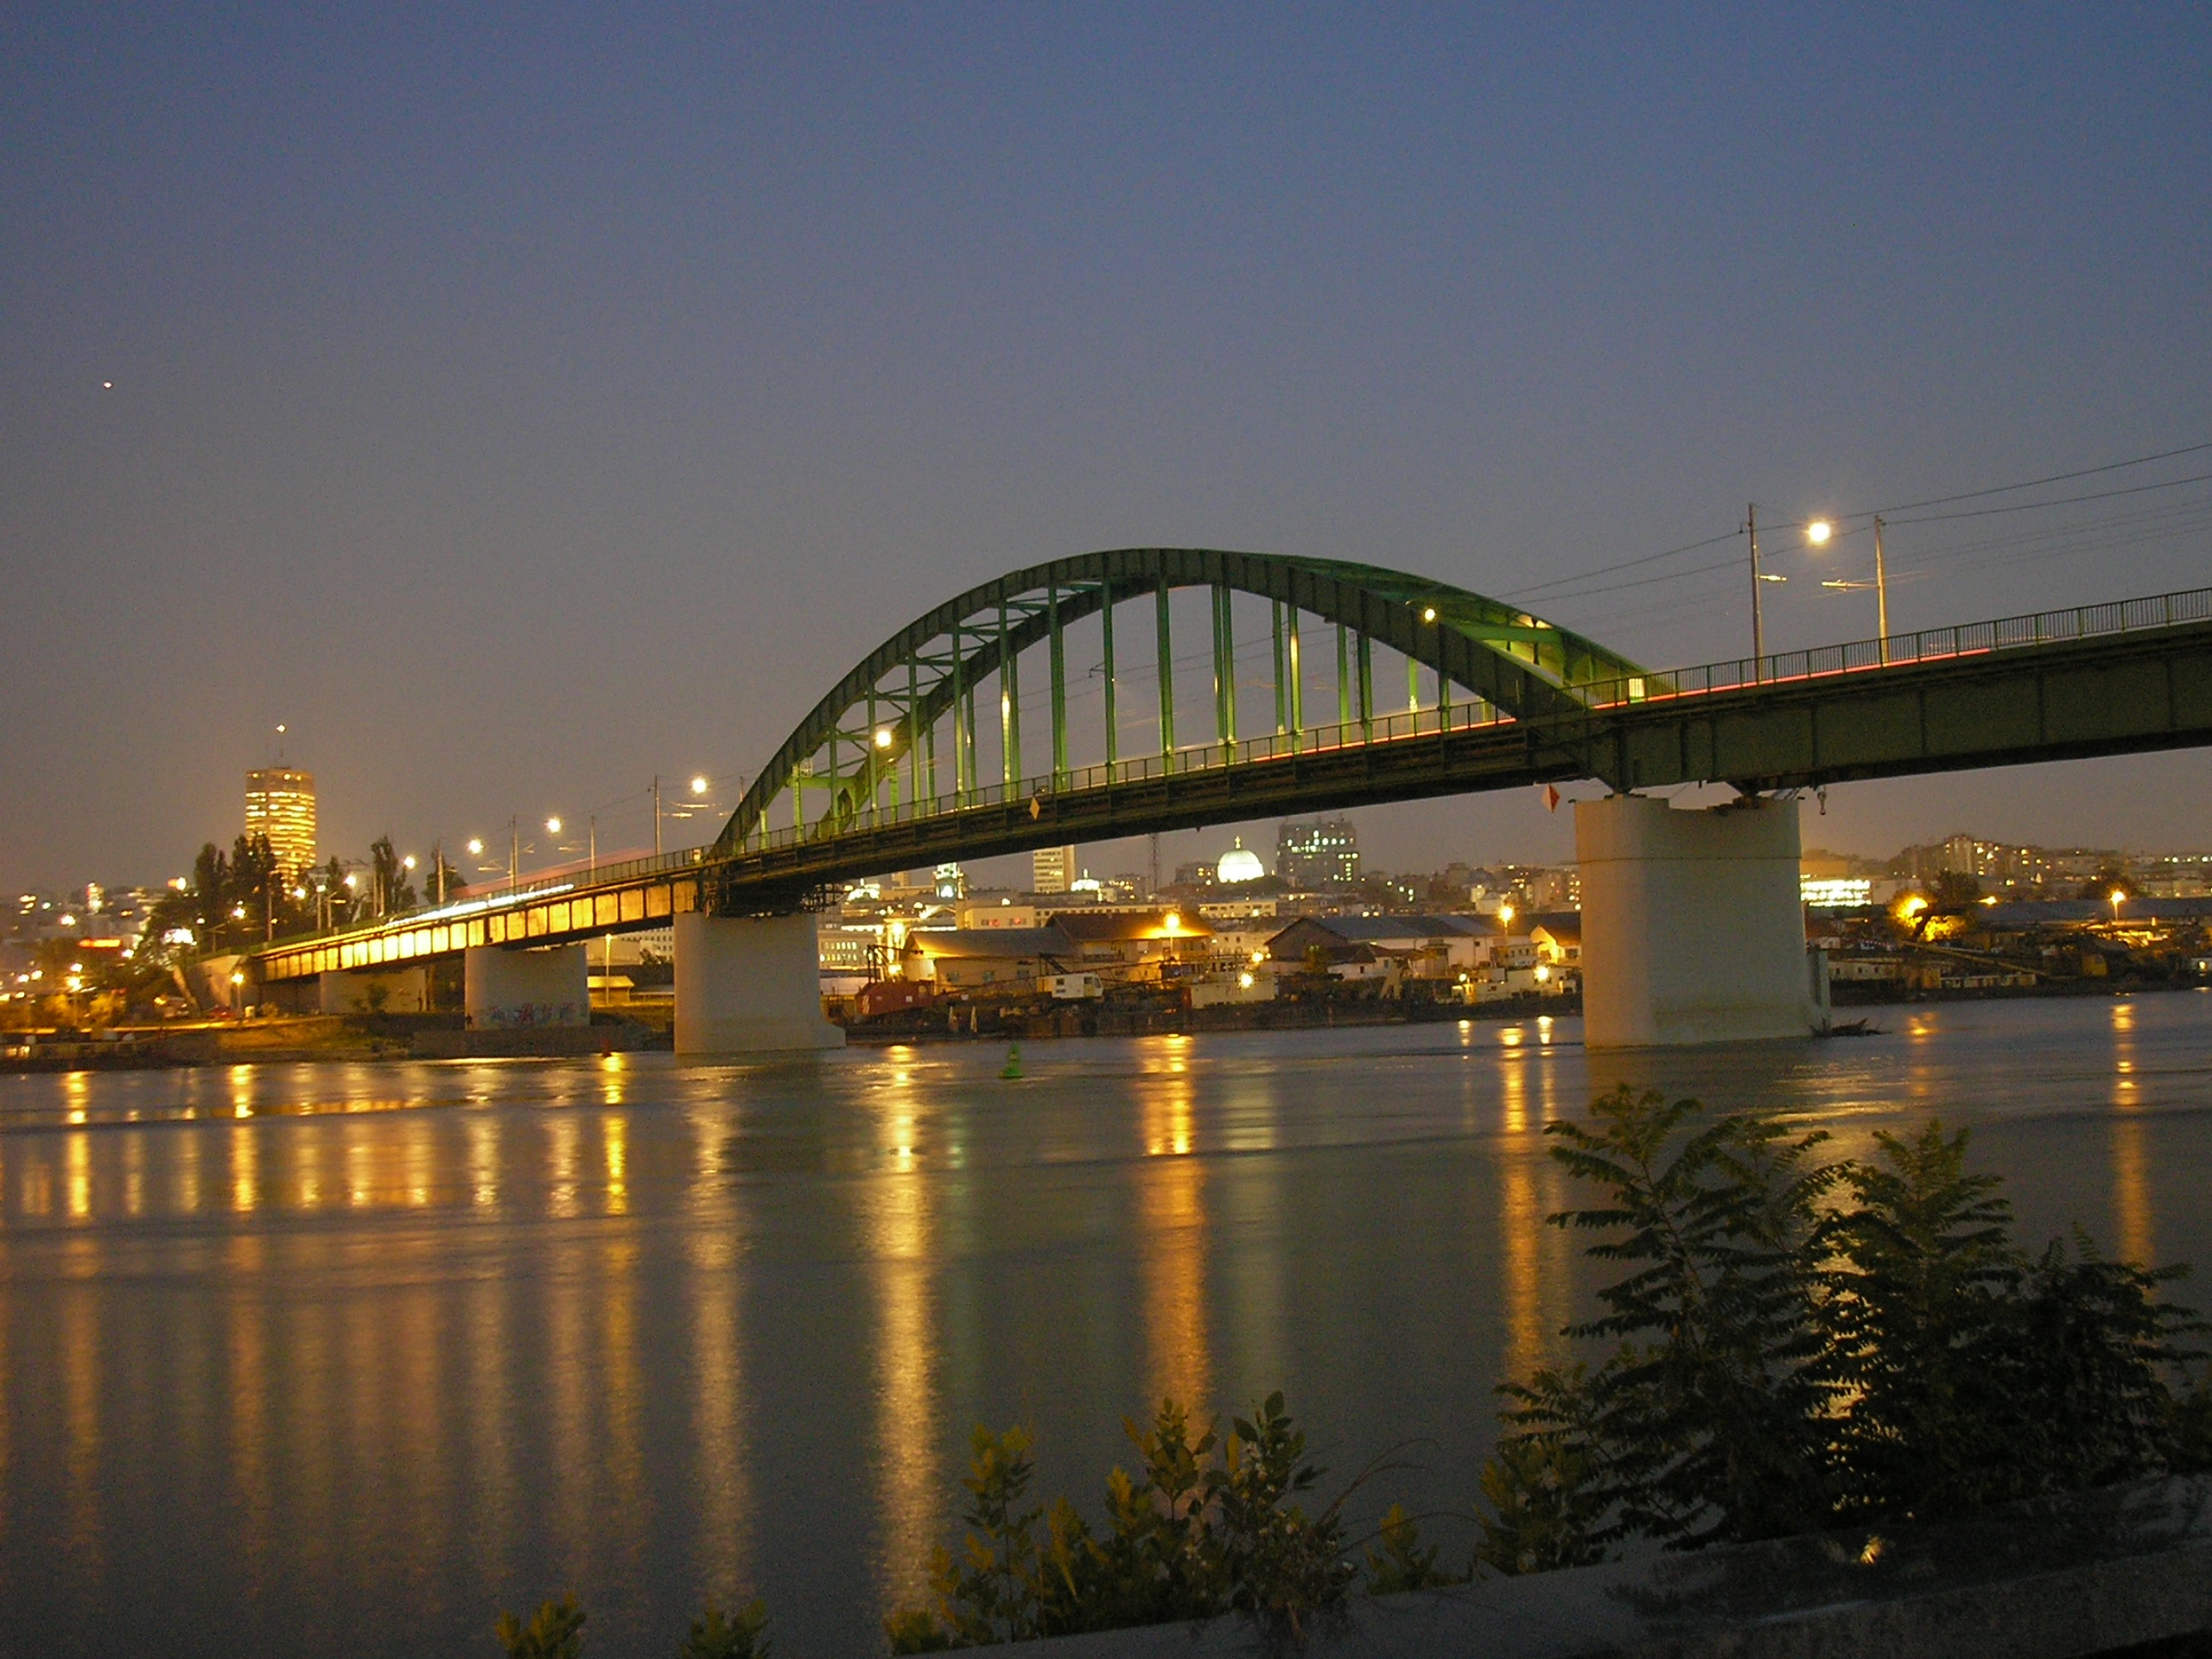 bridges-of-belgrade-1